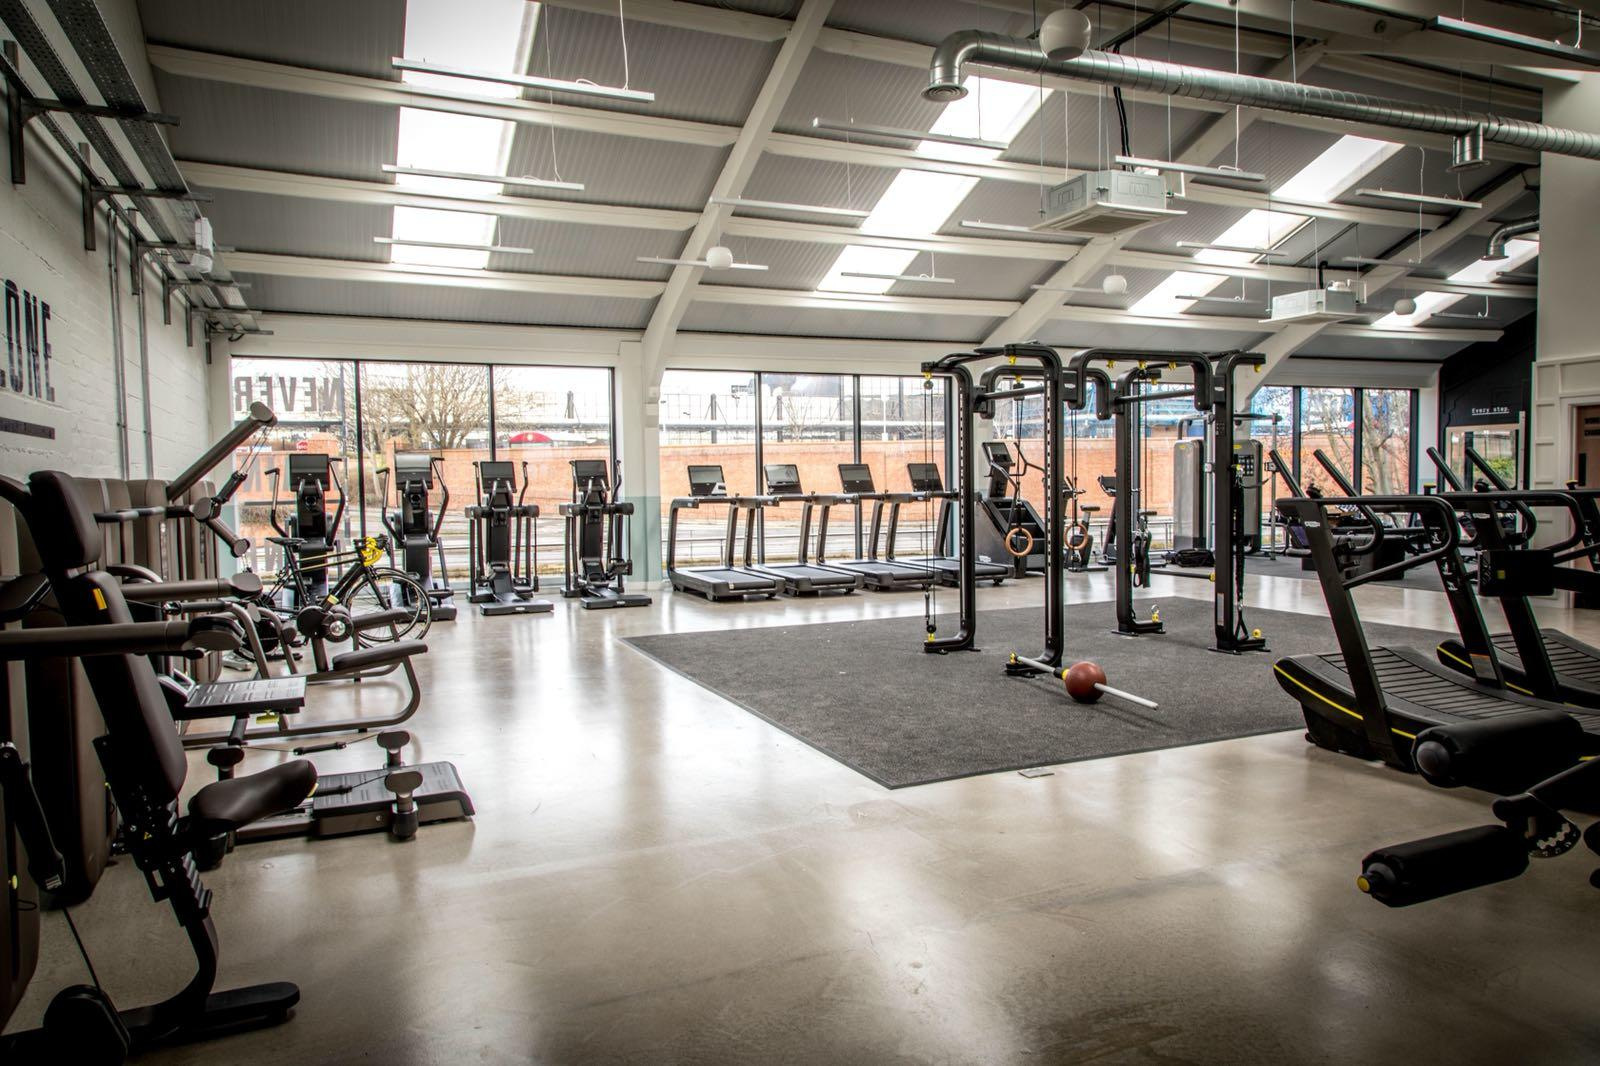 Fitness Space low cost fitness franchise image